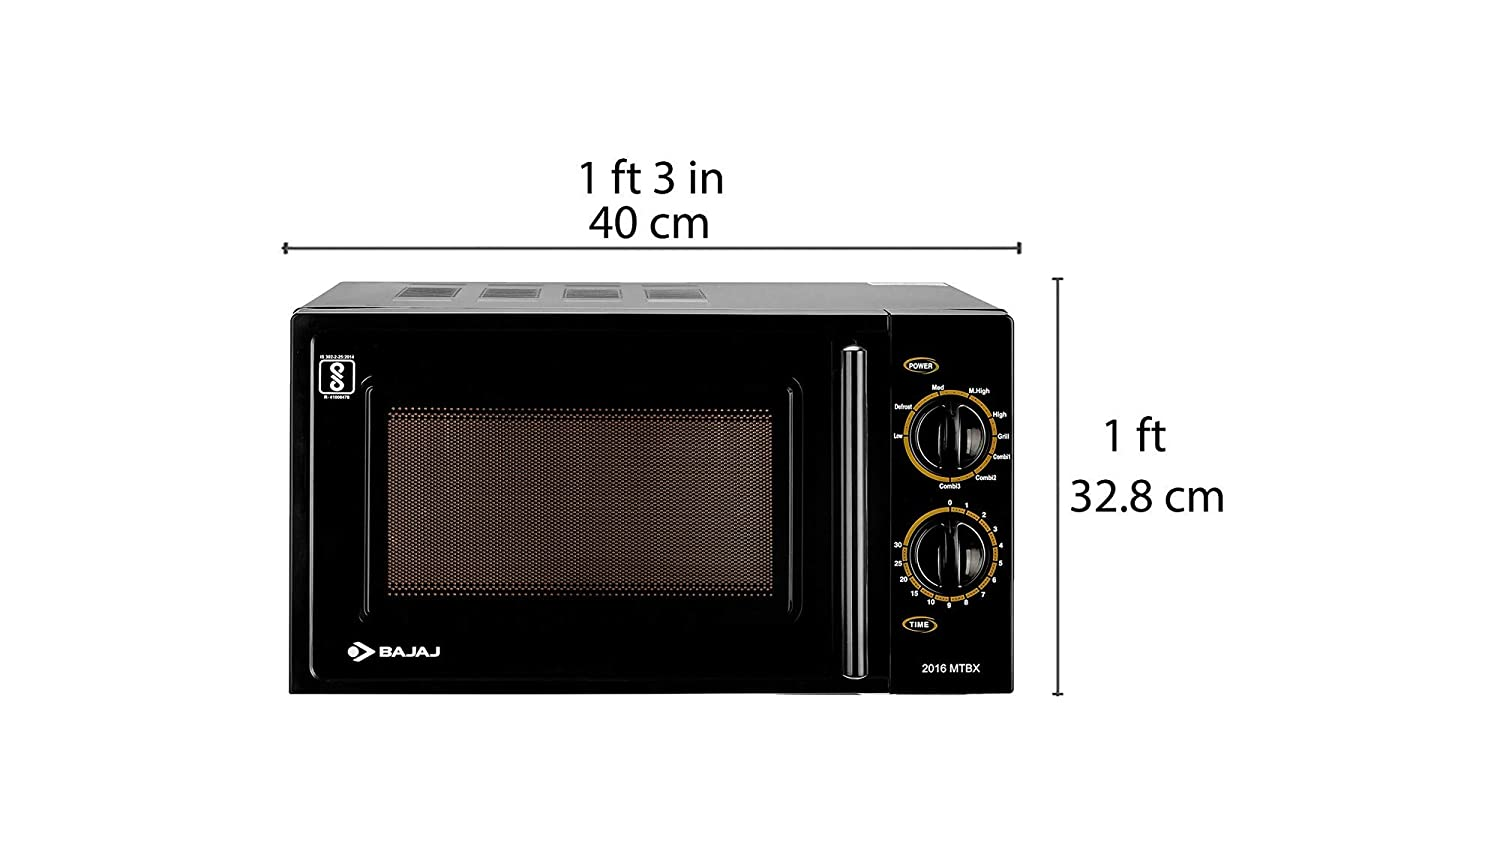 best microwave oven under 1000